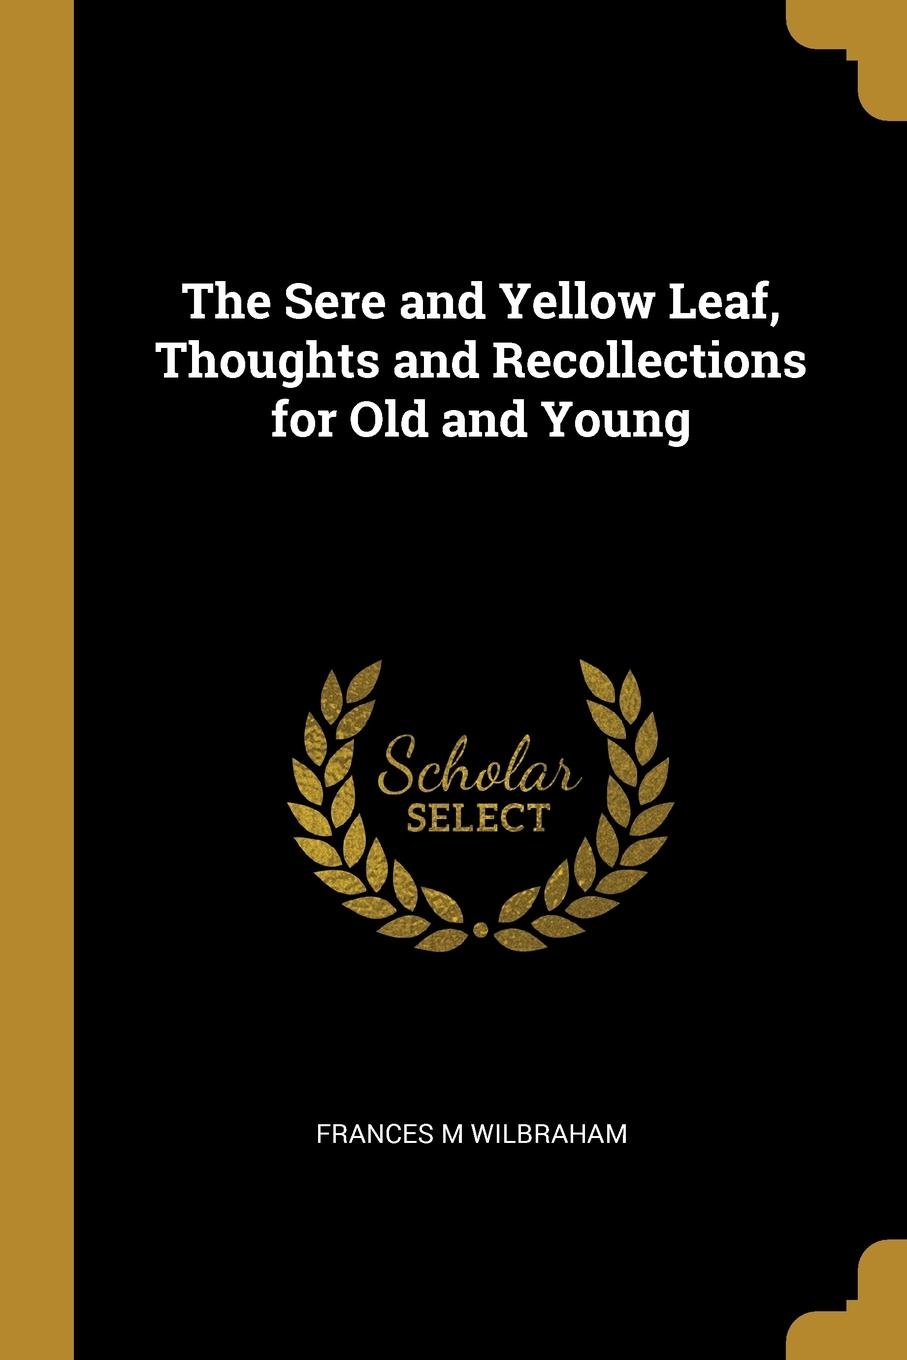 Frances M Wilbraham The Sere and Yellow Leaf, Thoughts and Recollections for Old and Young